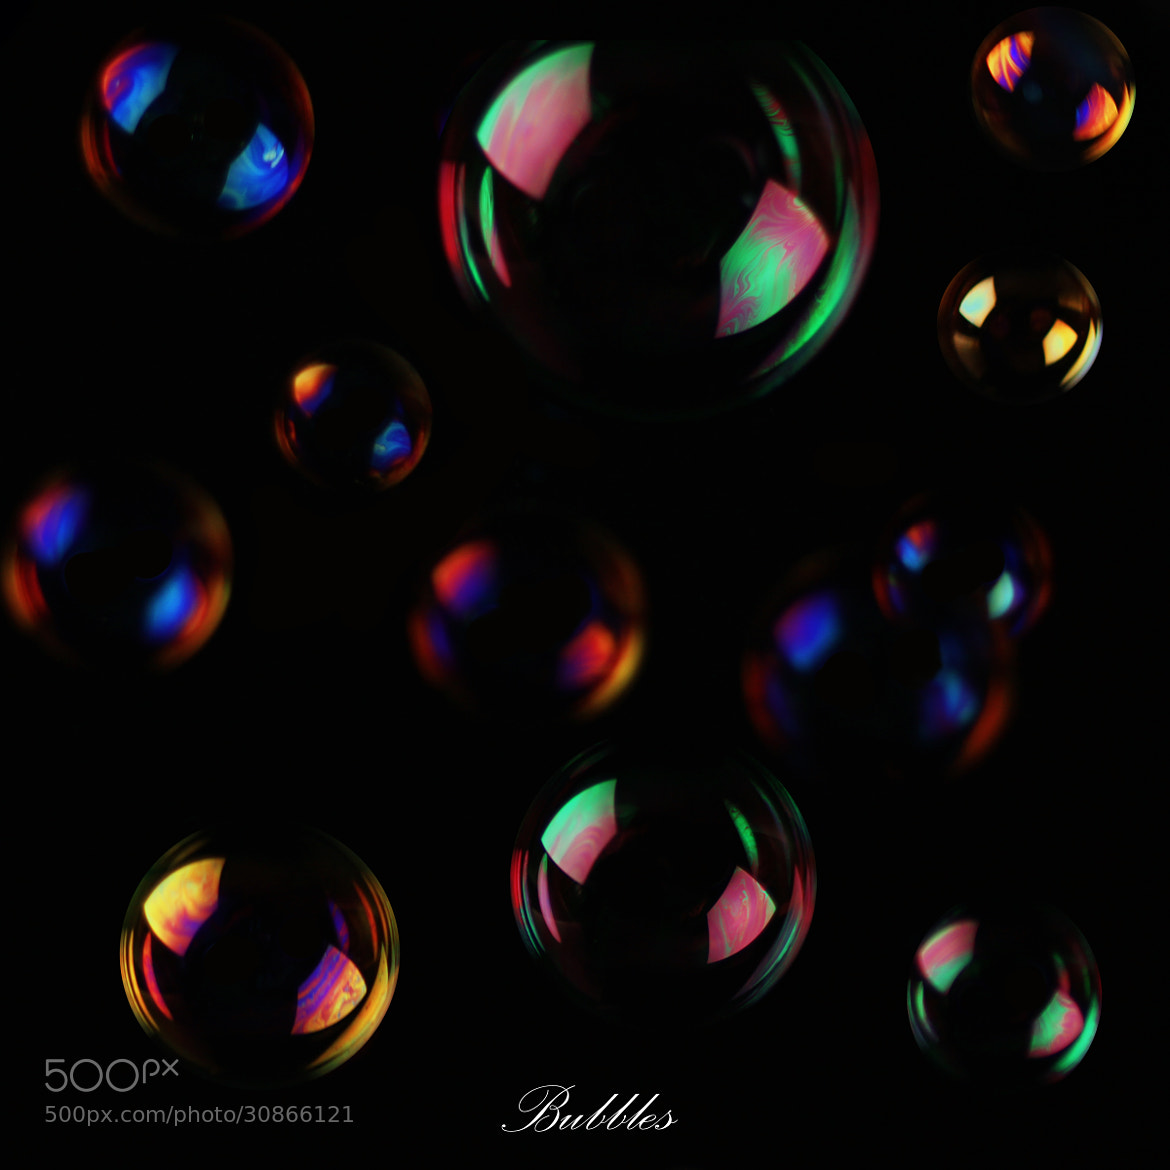 Photograph Bubbles by Leif Løndal on 500px